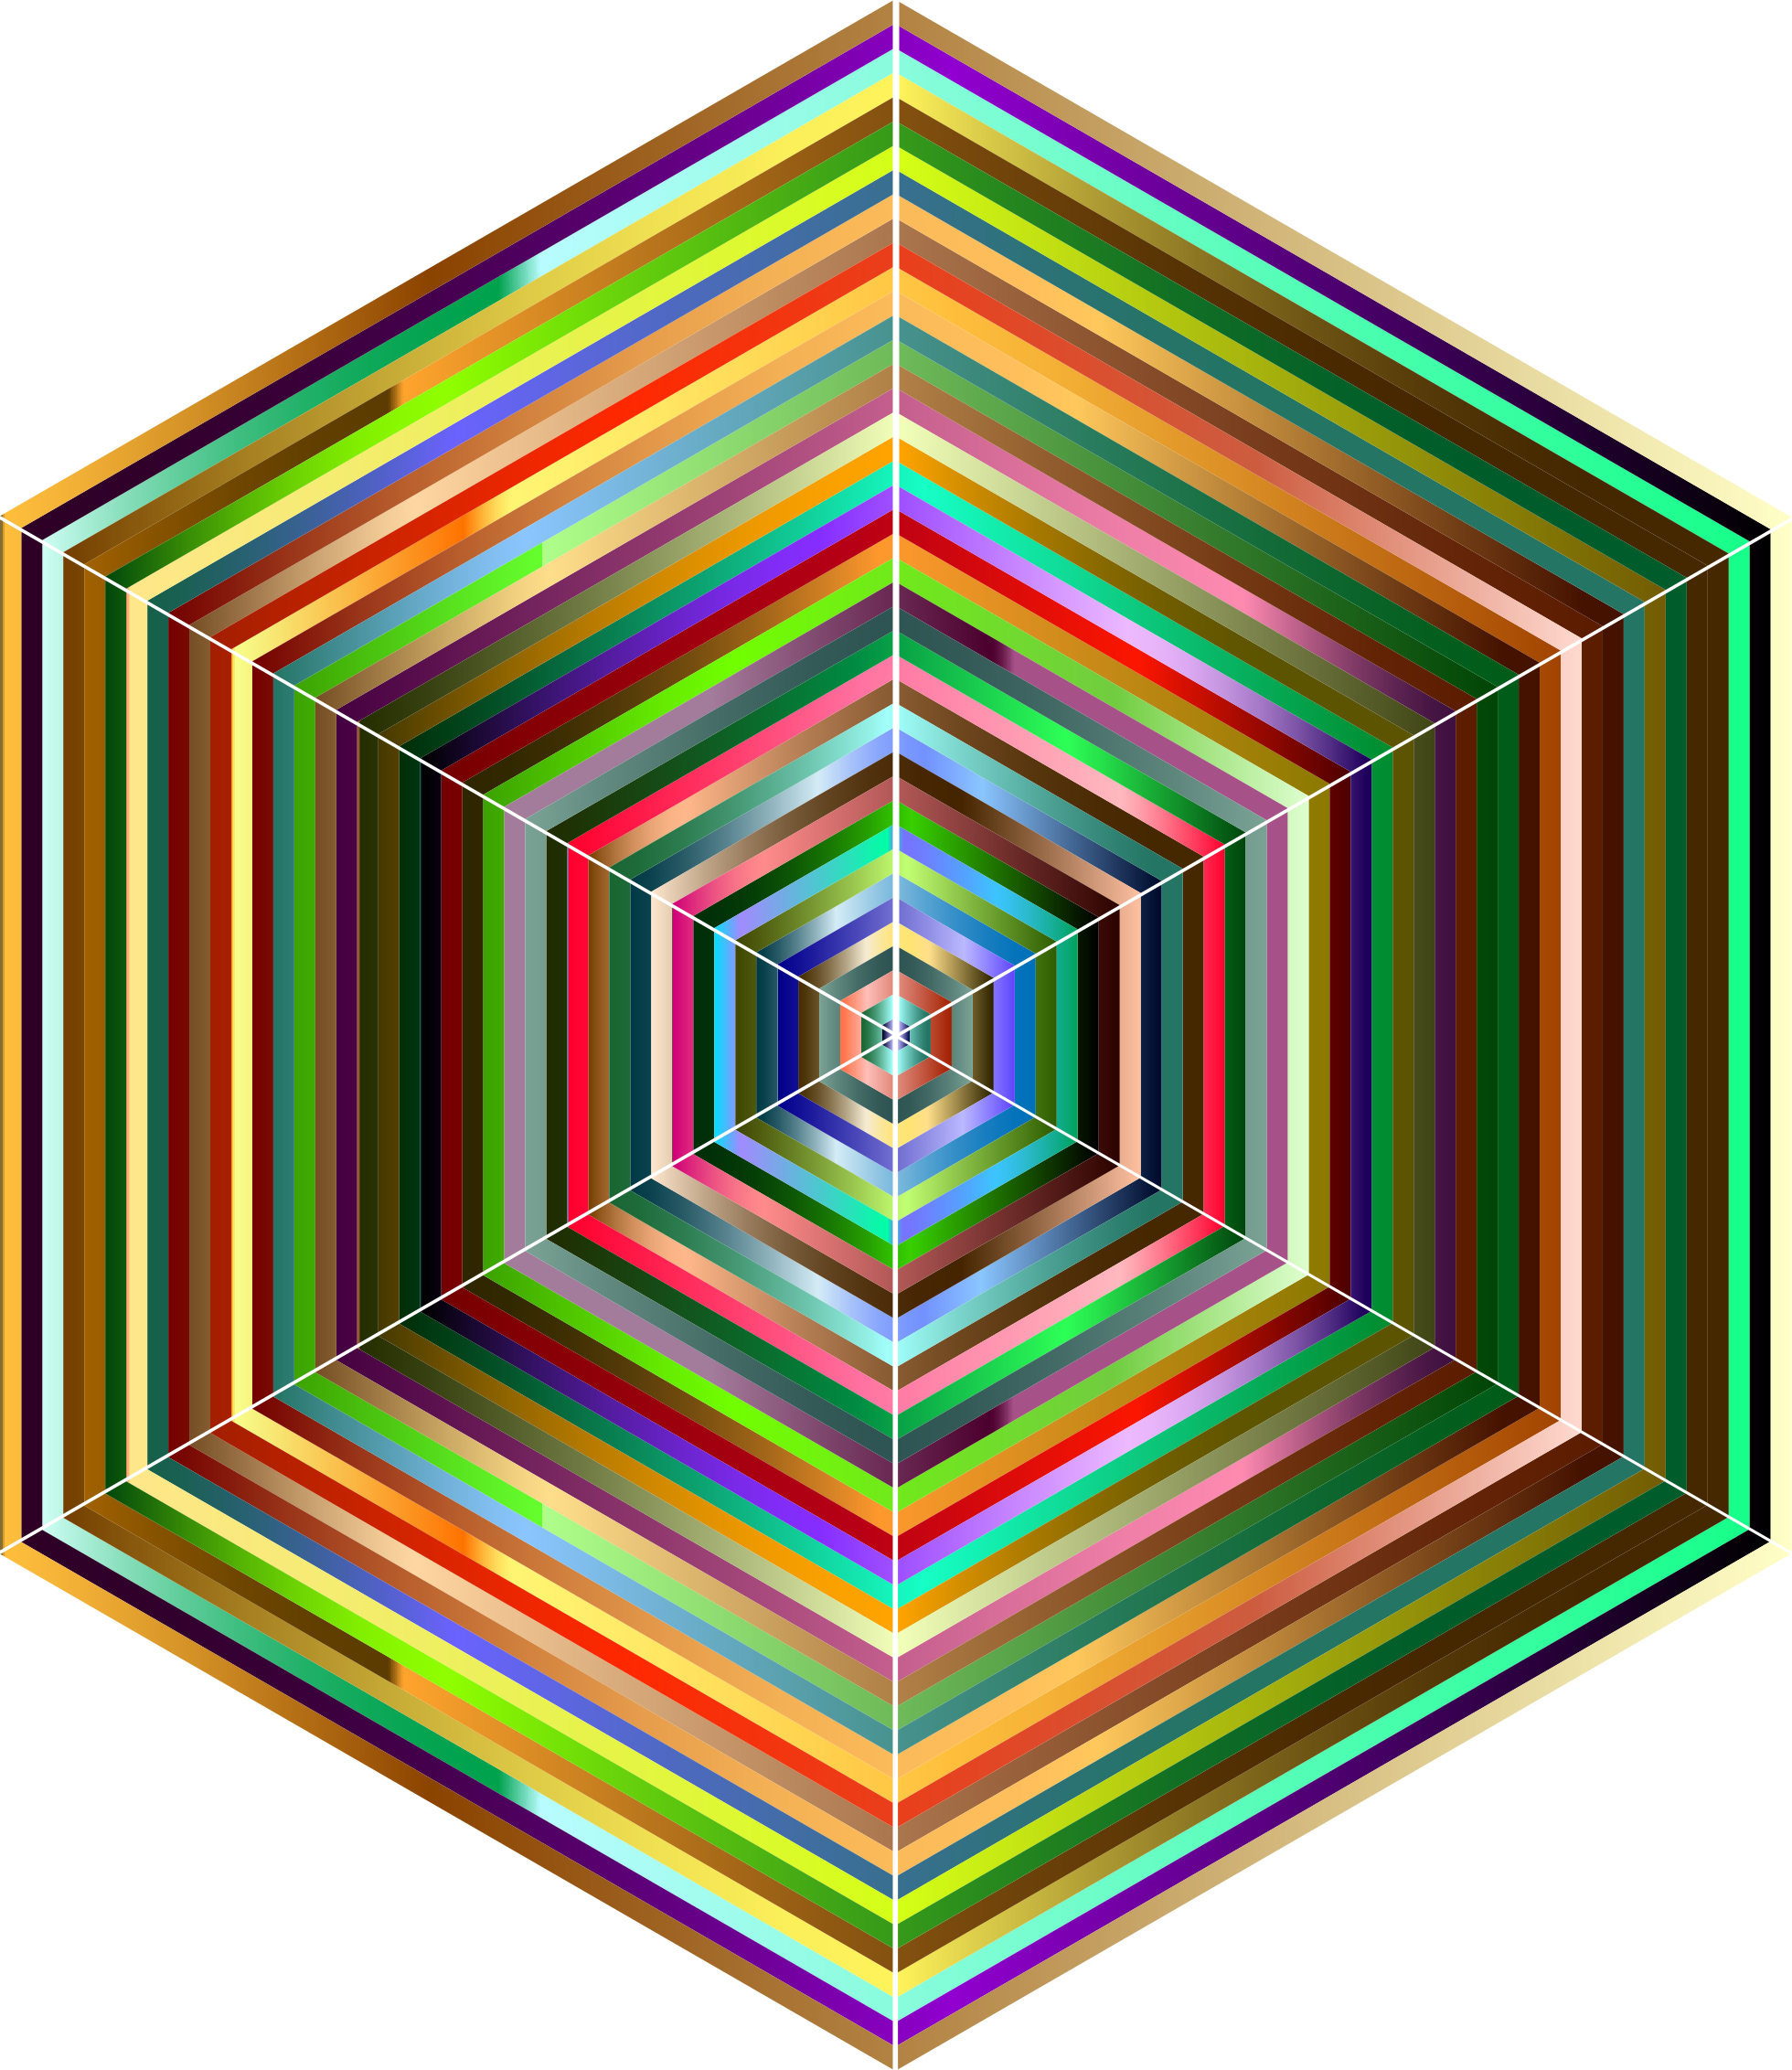 Prismatic Hypercube by GDJ